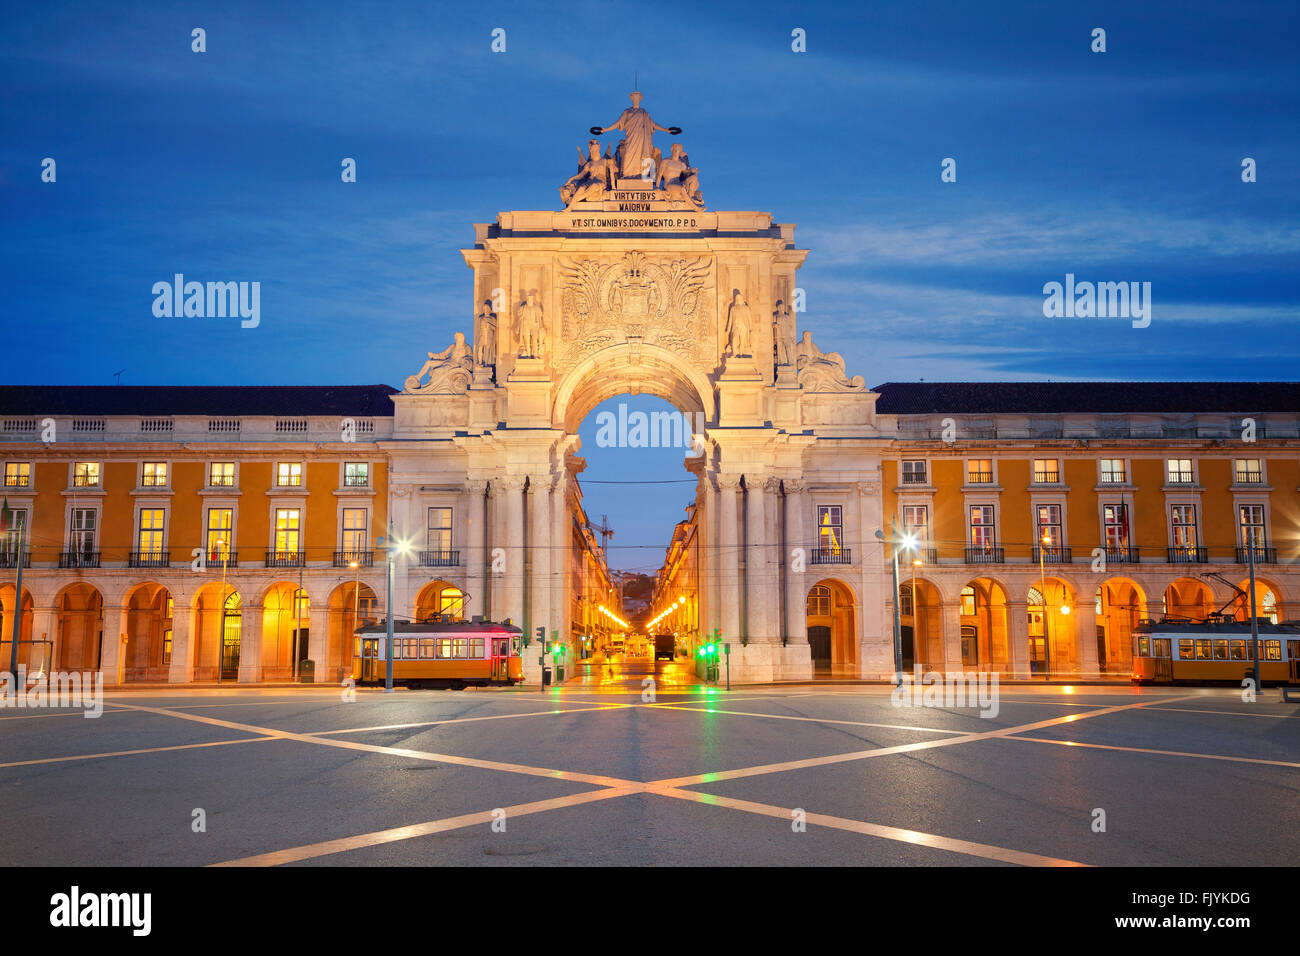 Lisbon. Image of Arch of Triumph in Lisbon, Portugal. - Stock Image